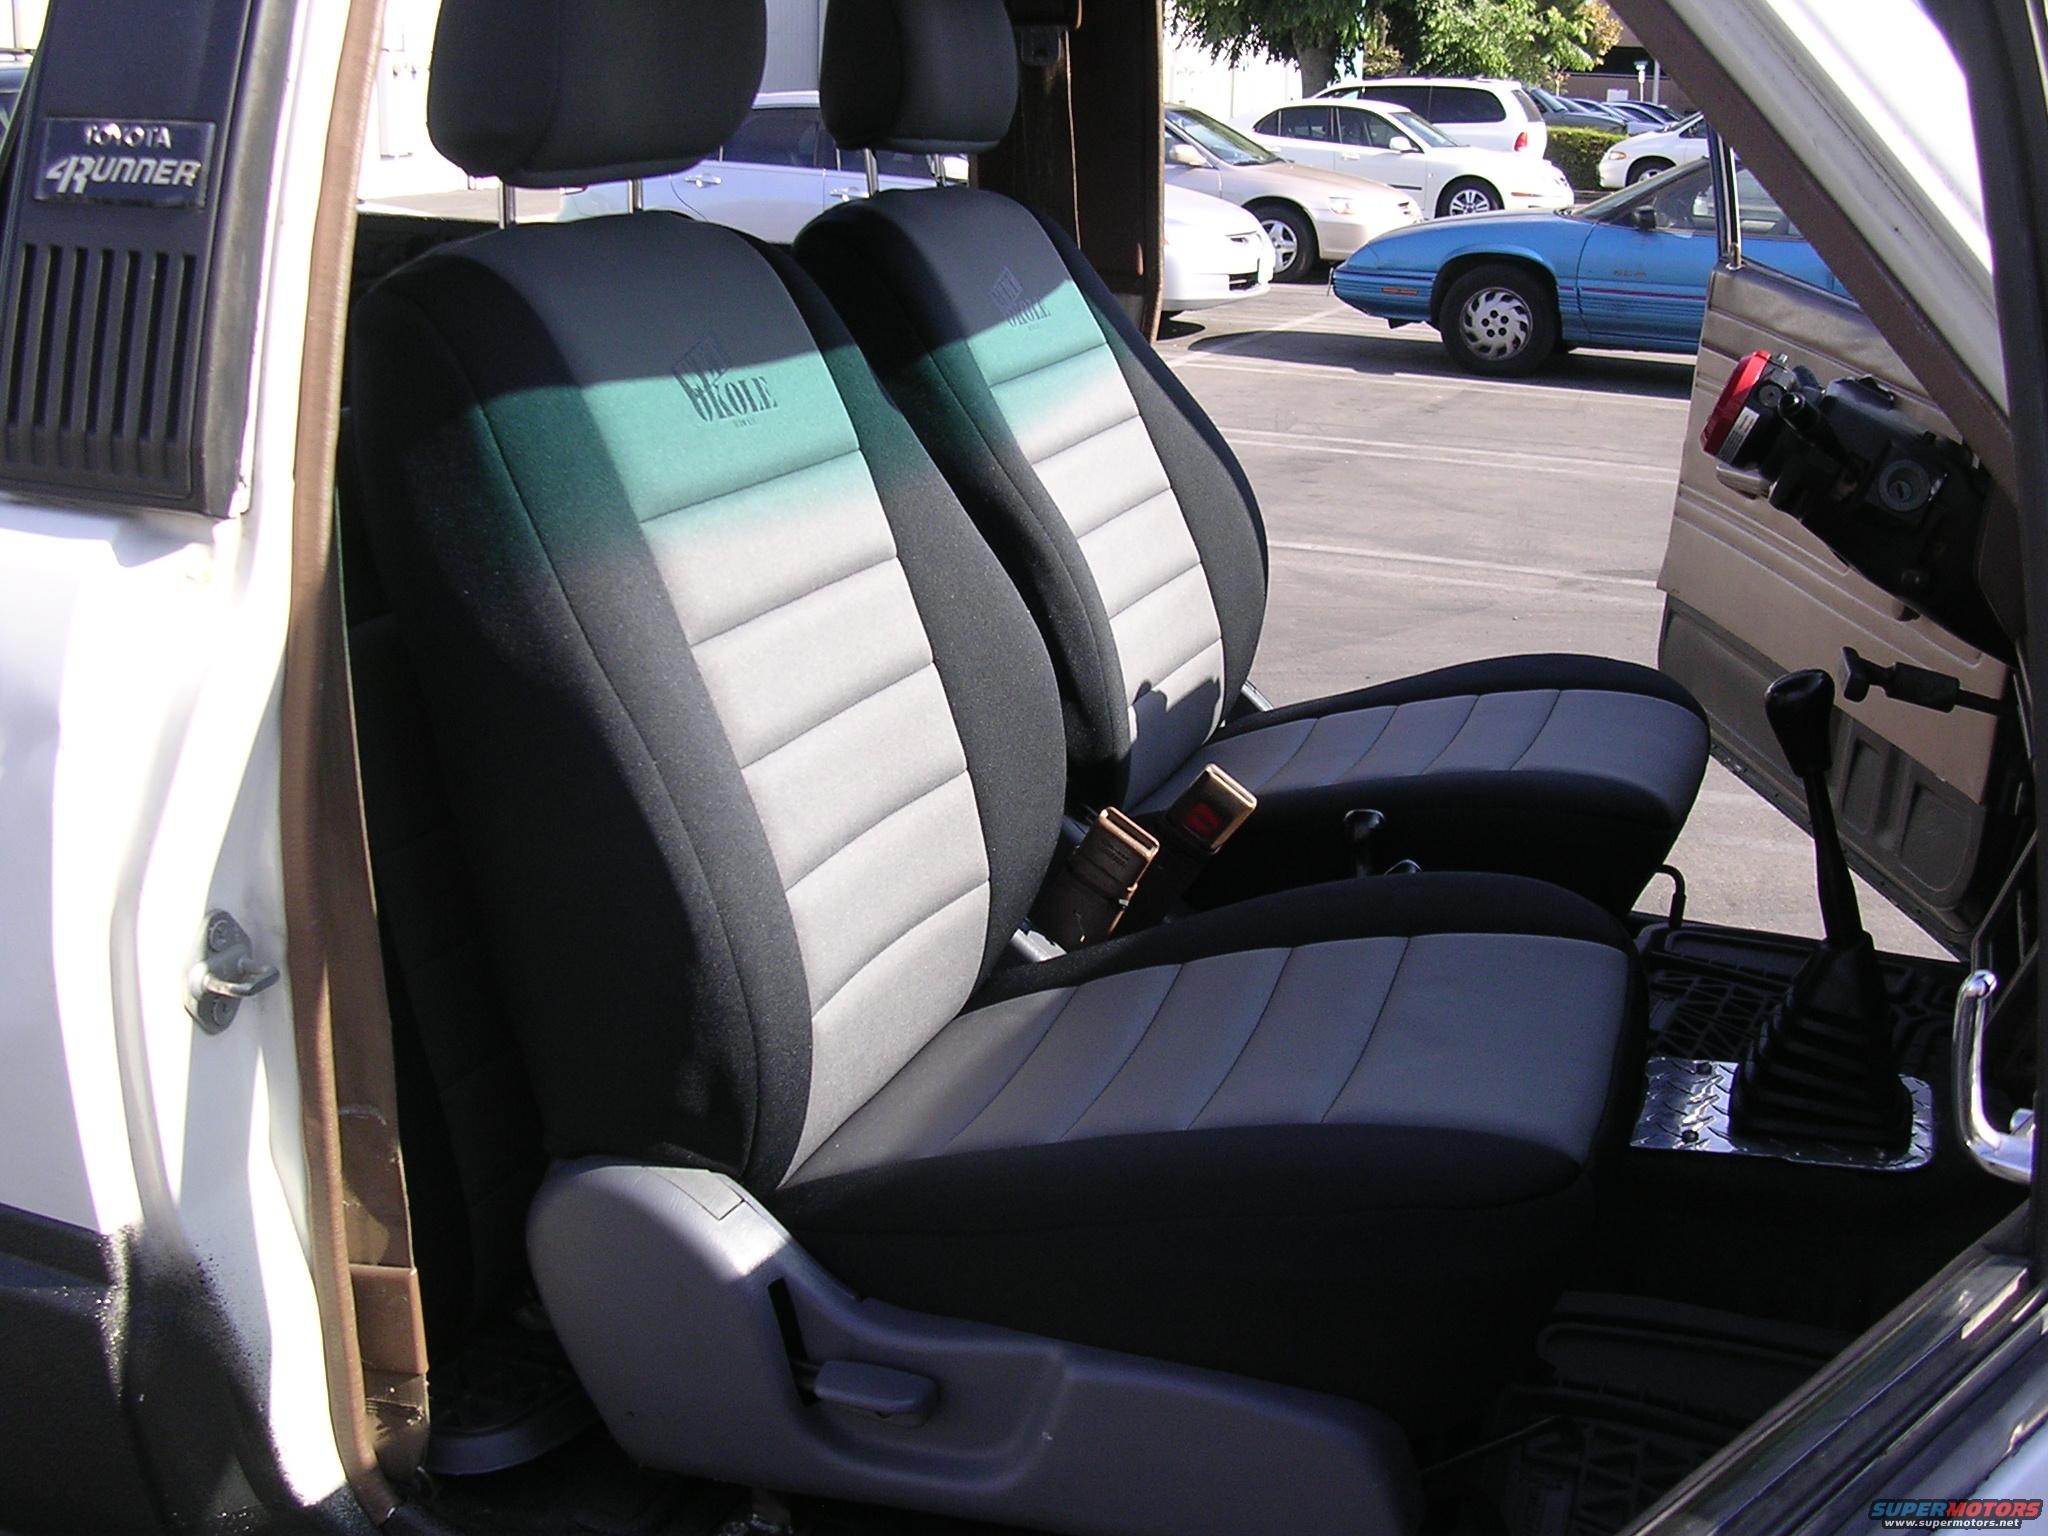 1985 Toyota 4Runner Wet Okole Seat Covers Picture